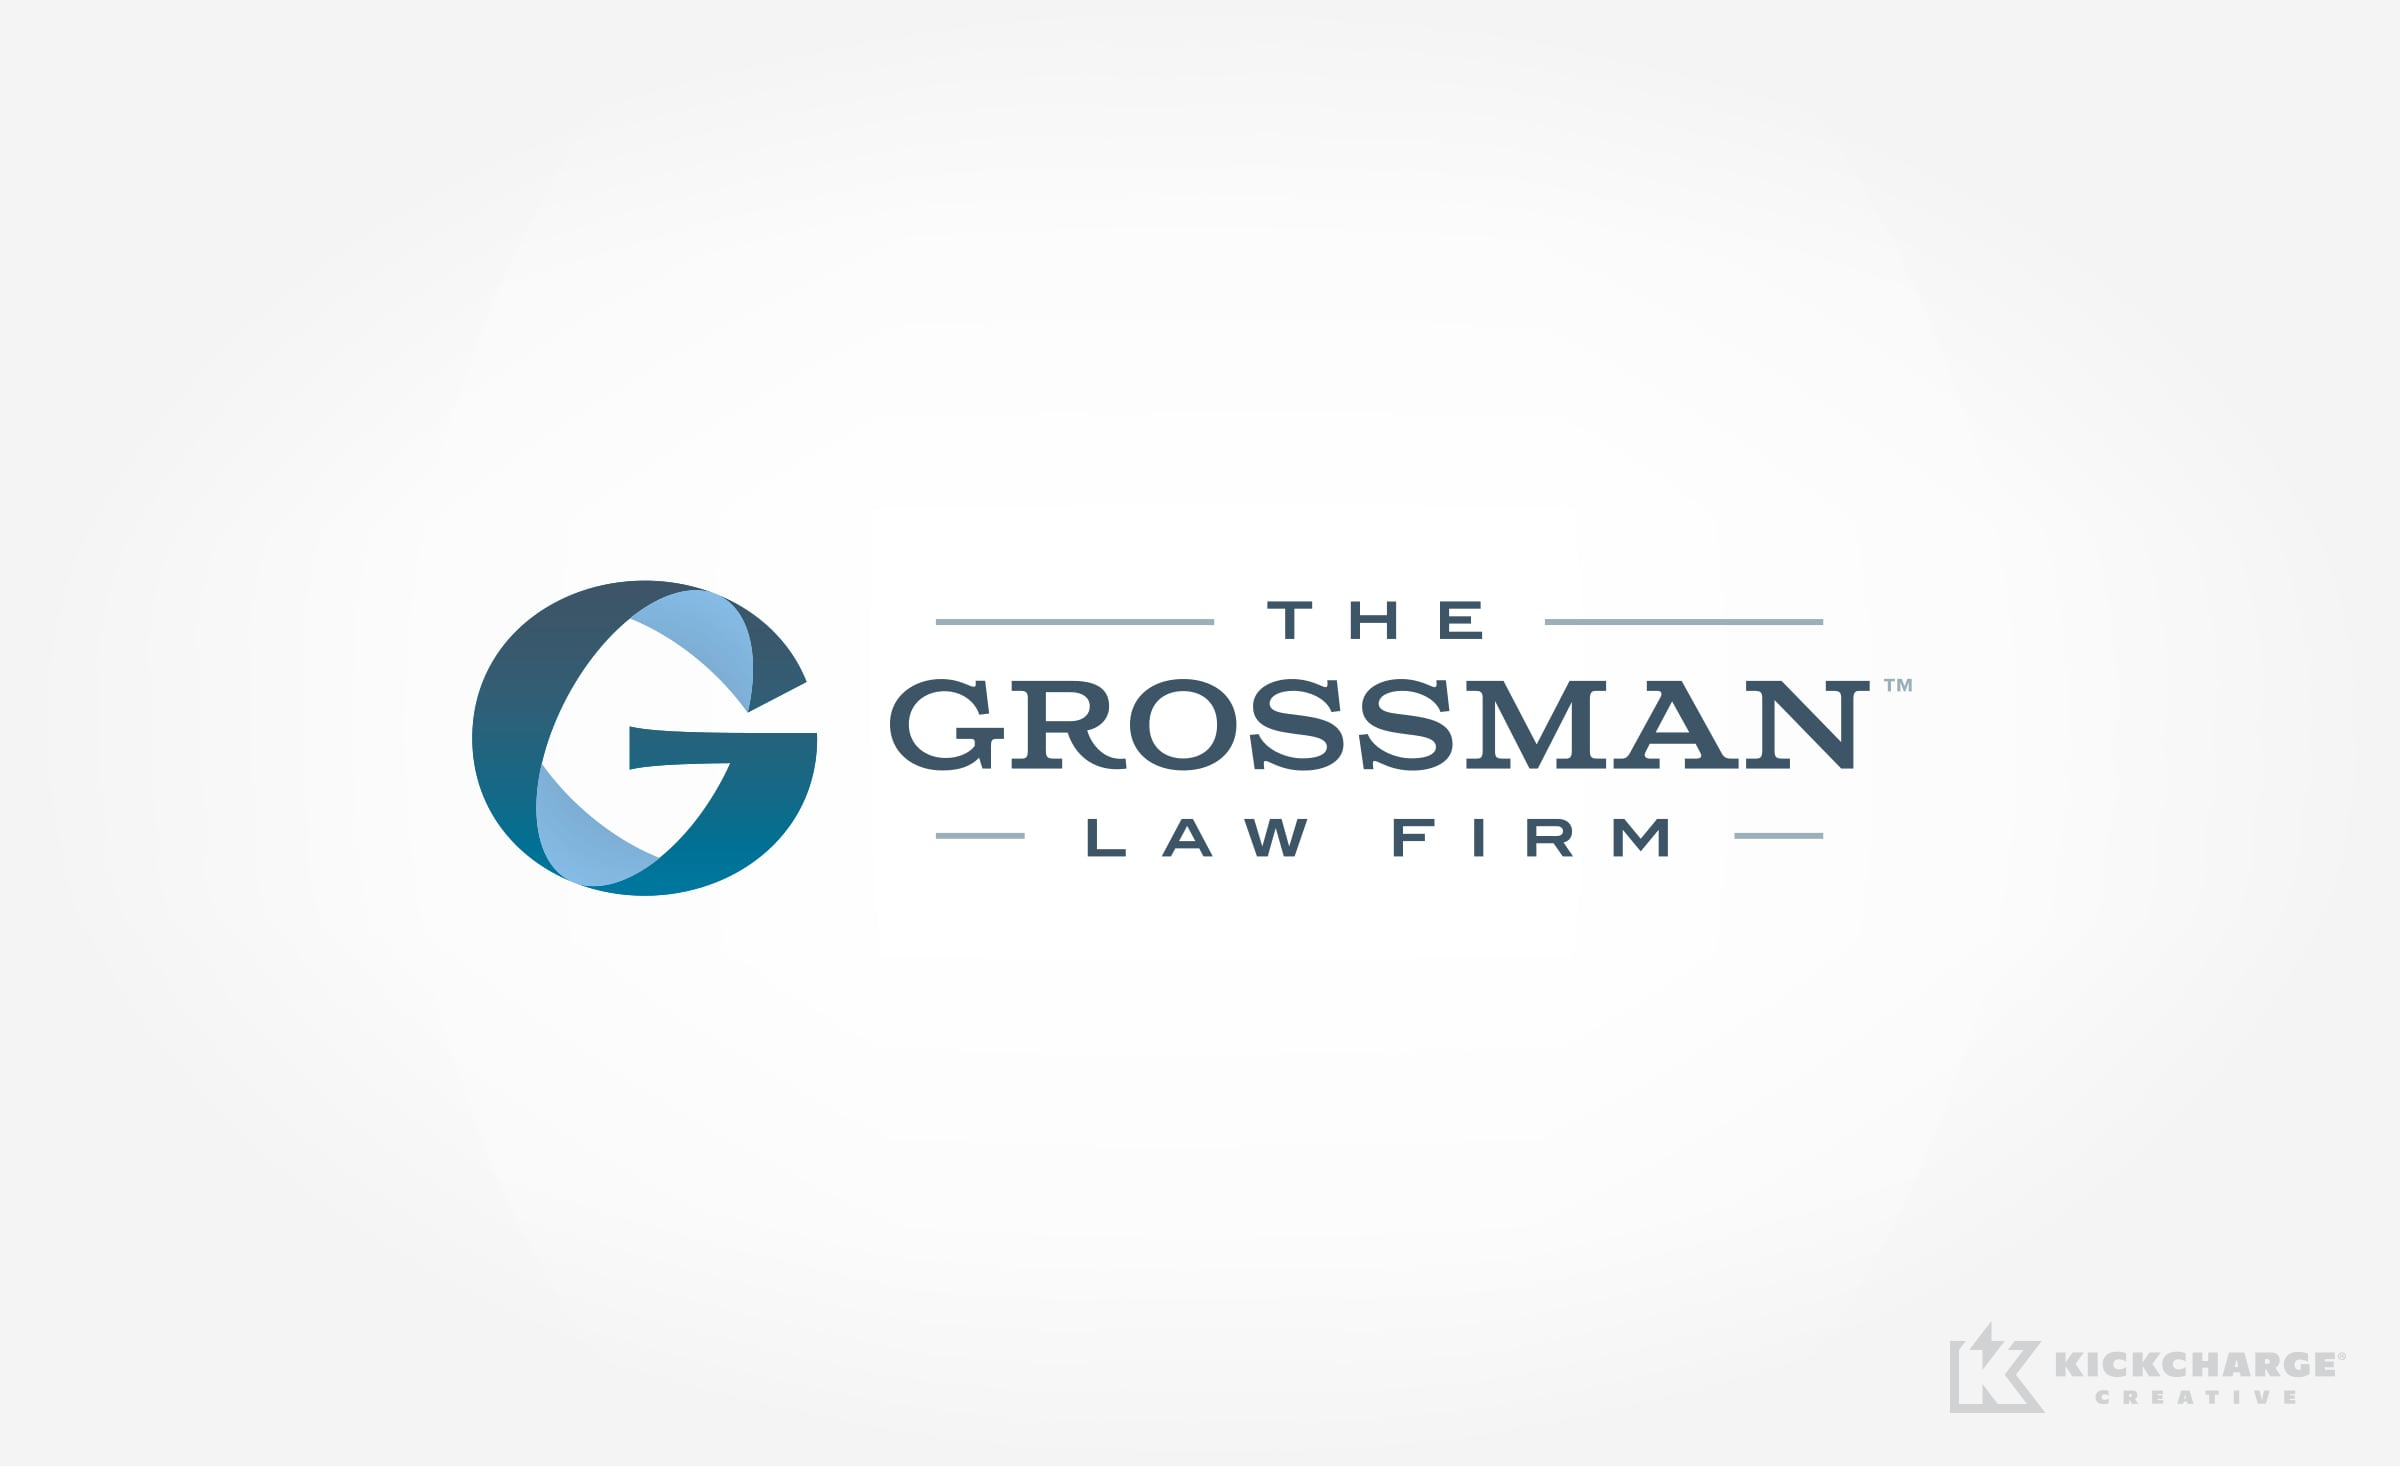 The Grossman Law Firm